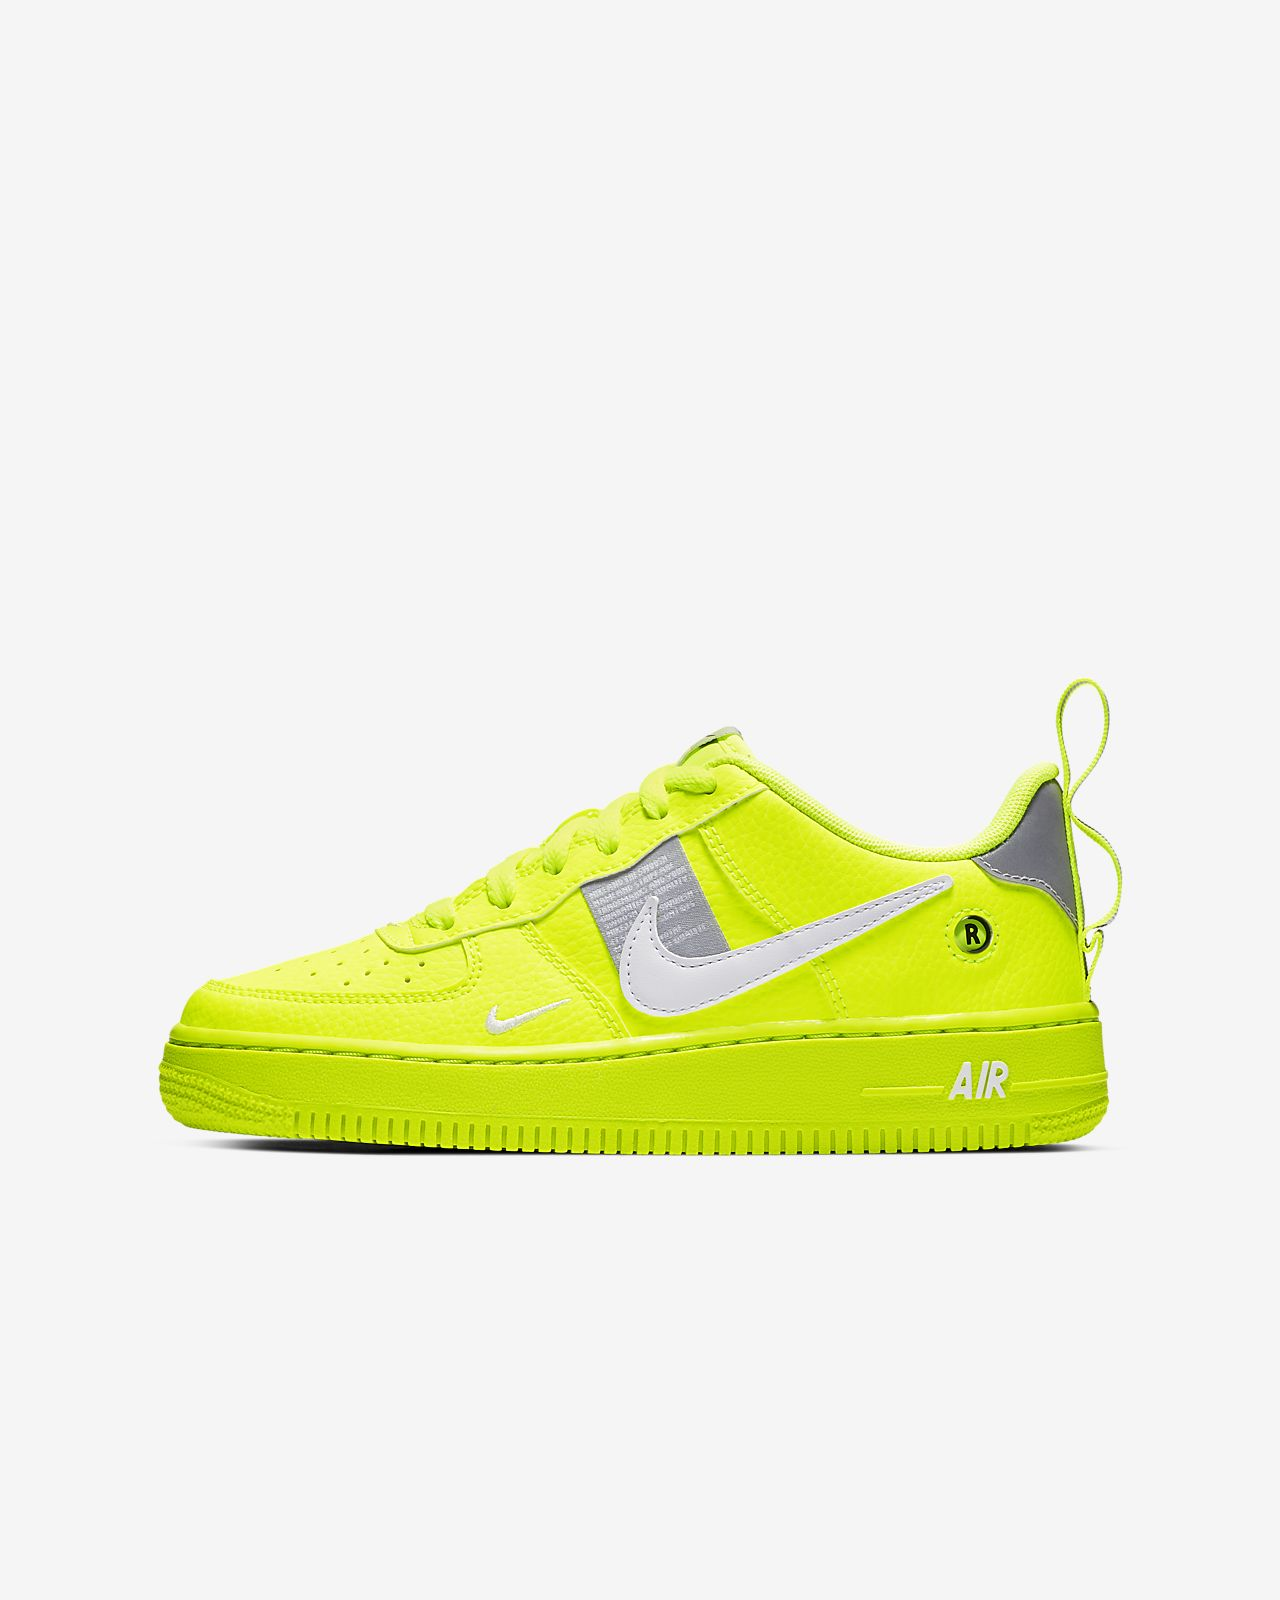 new style fa2c3 d4eac ... Nike Air Force 1 LV8 Utility Big Kids  Shoe